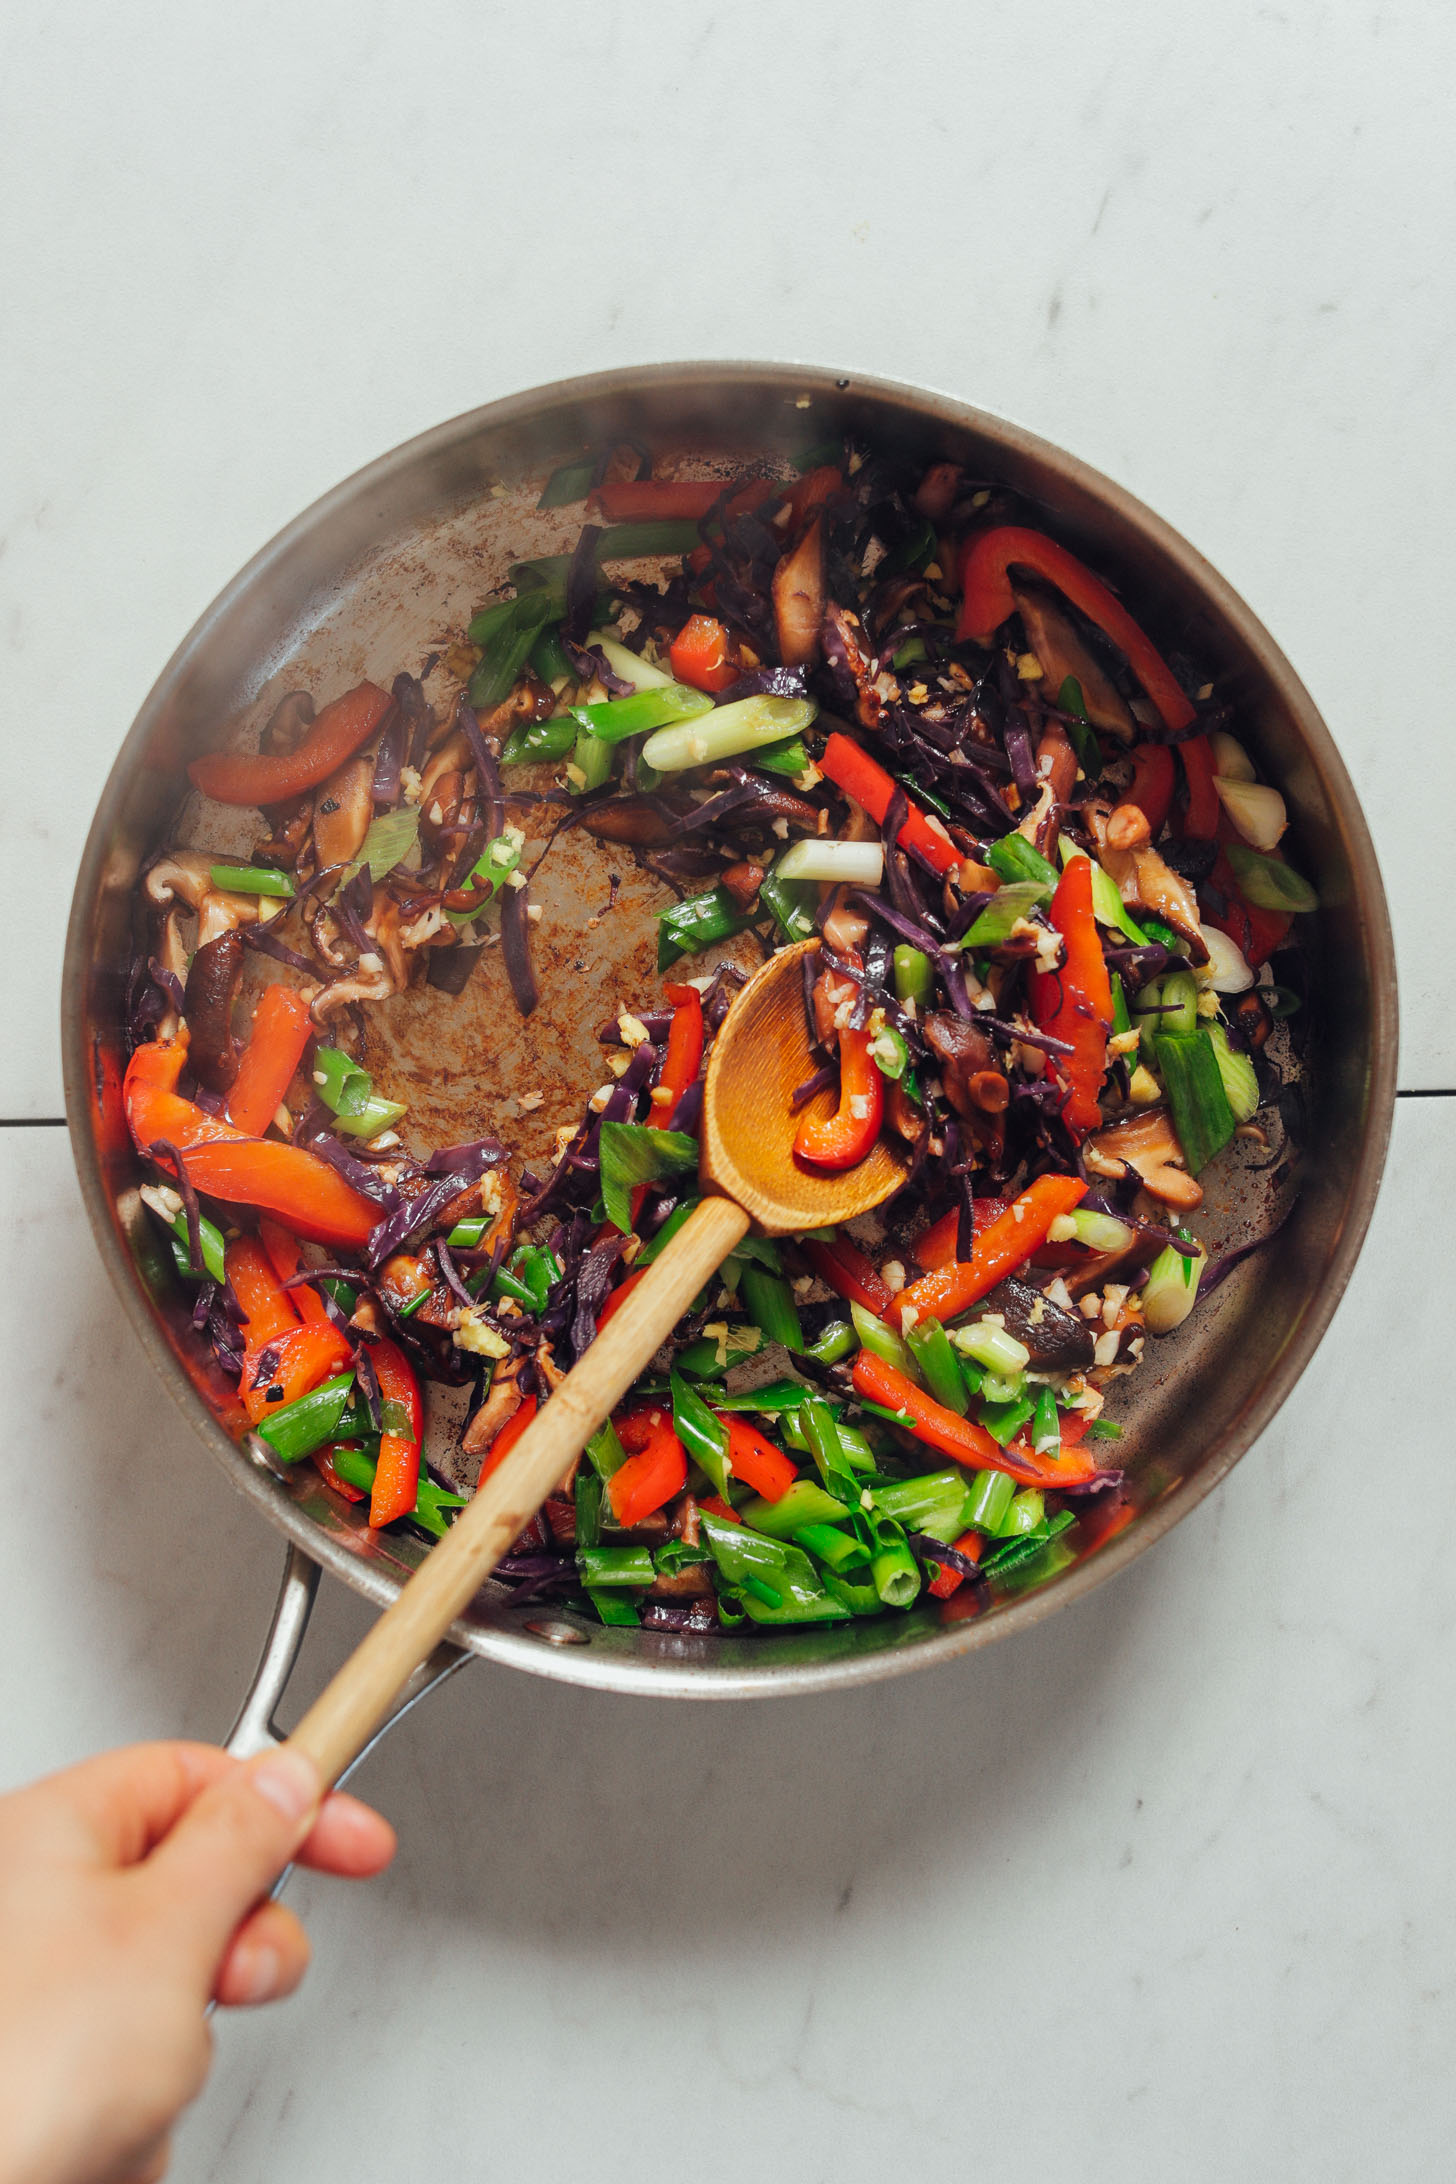 Using a wooden spoon to stir vegetables for a quick Tofu Stir Fry